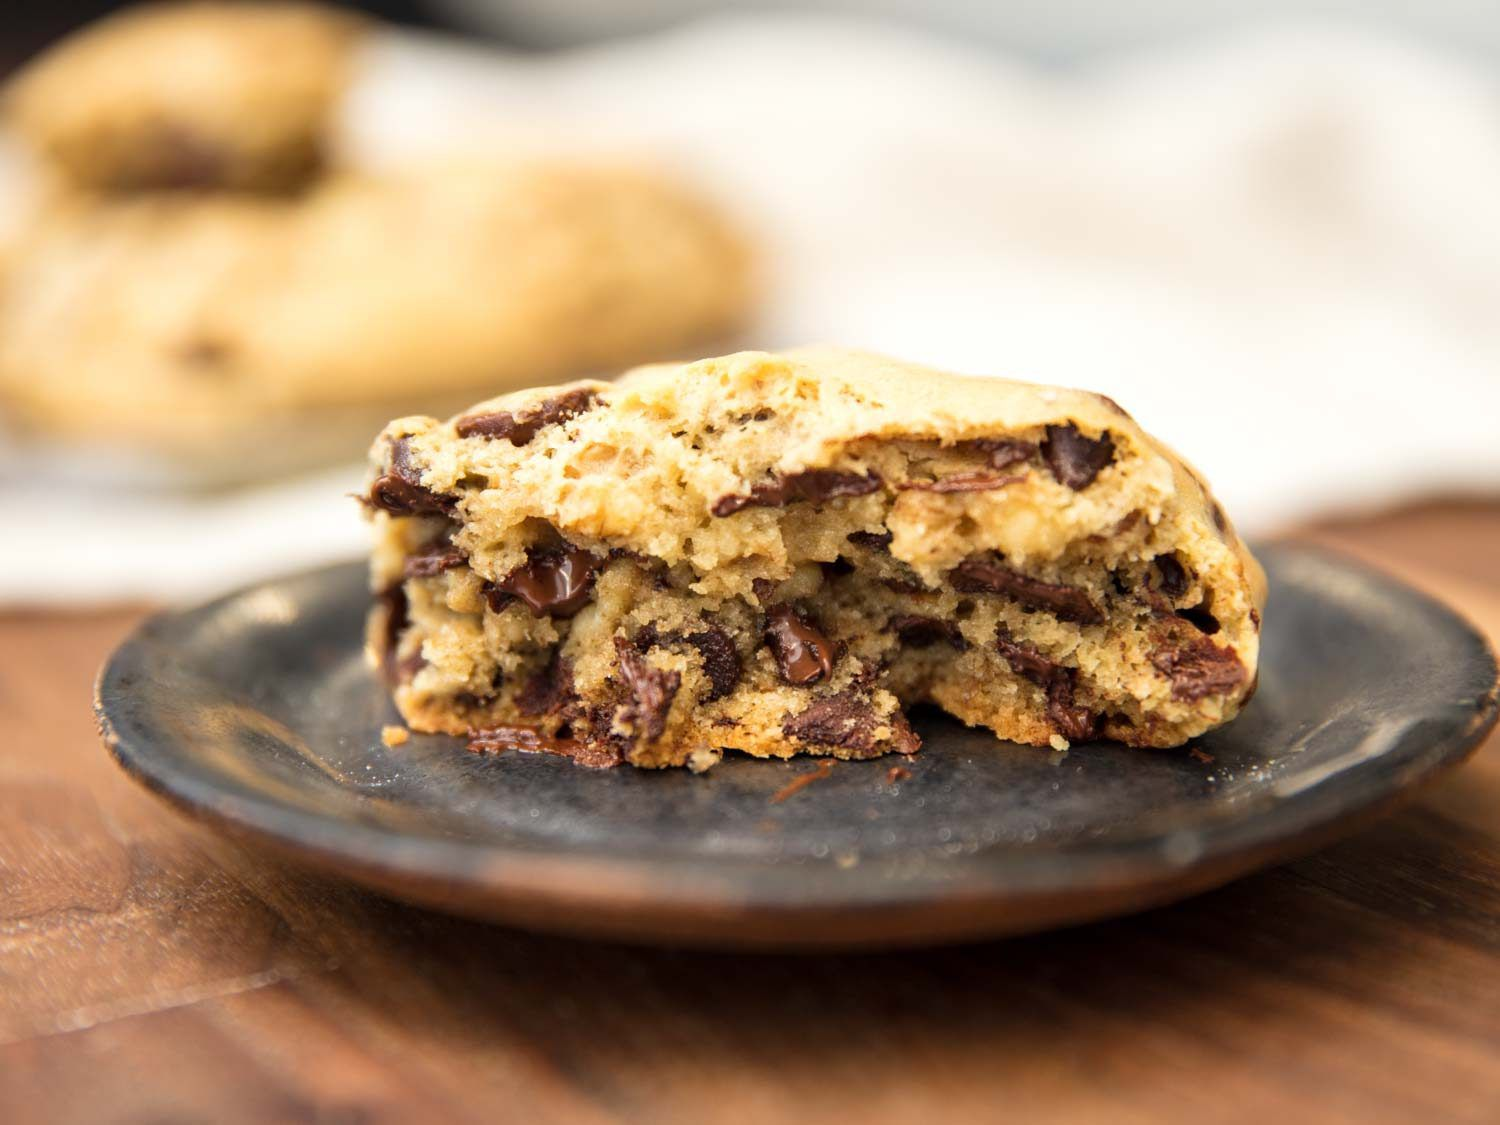 interior of a thick chocolate chip cookie